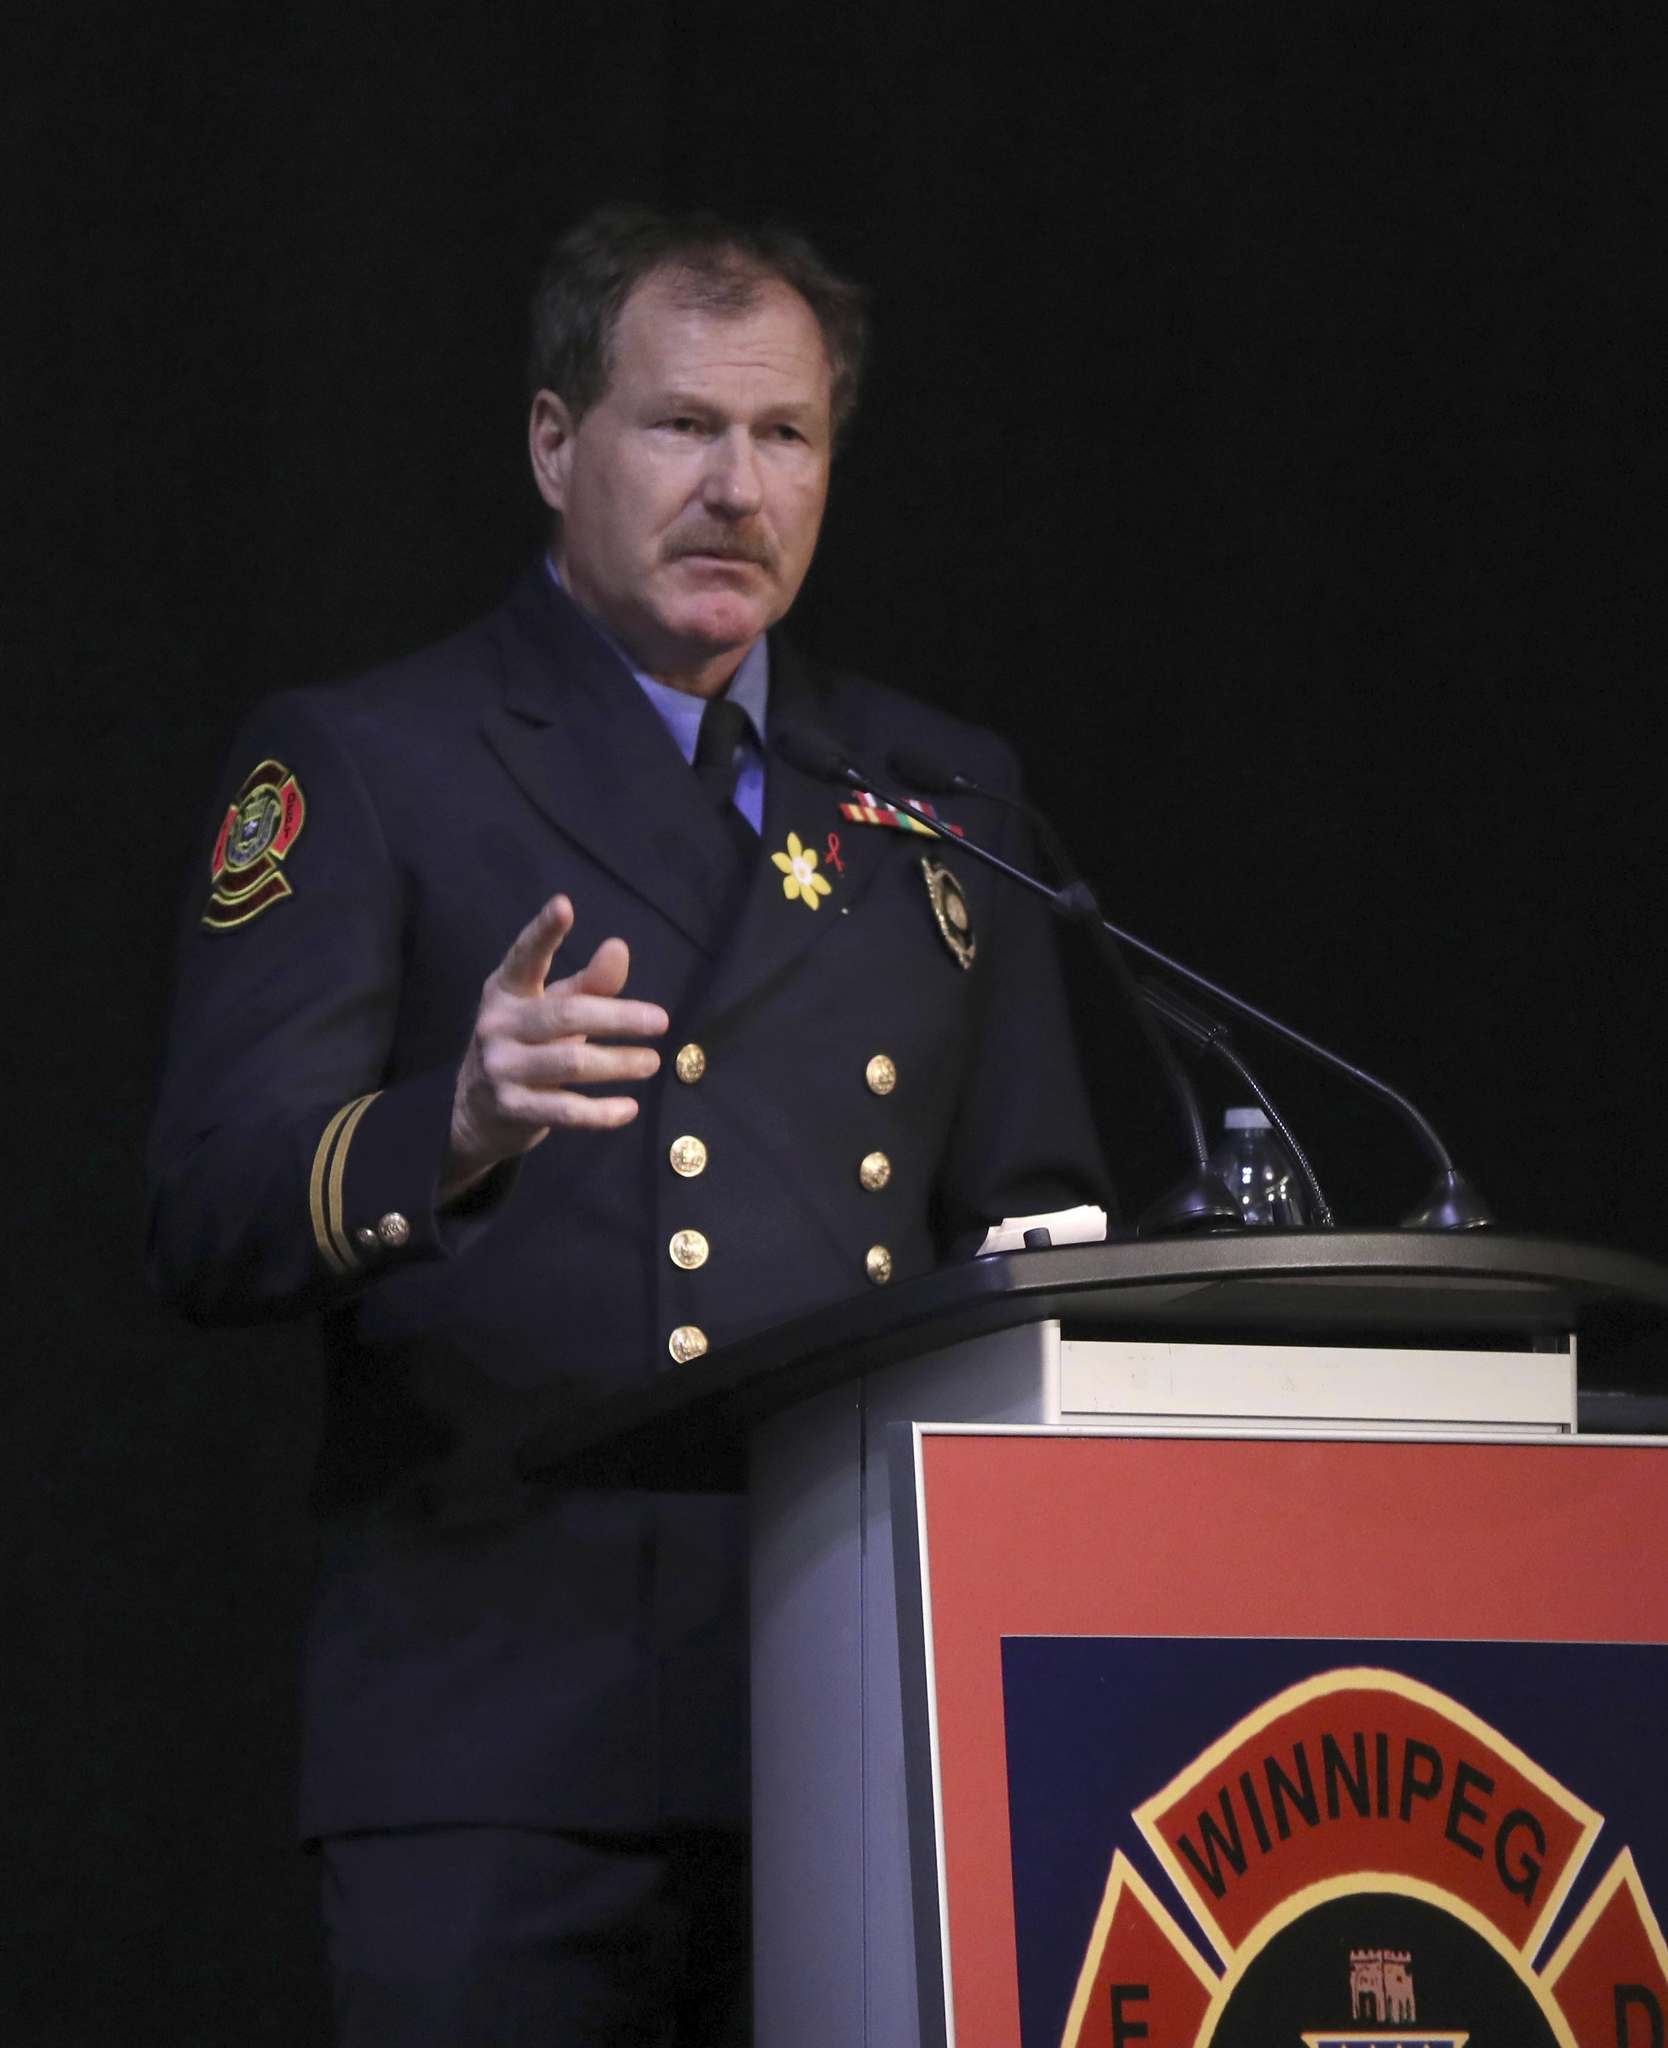 Alex Forrest was voted in as president of the United Fire Fighters of Winnipeg as almalgamation was underway, a position he holds to this day.